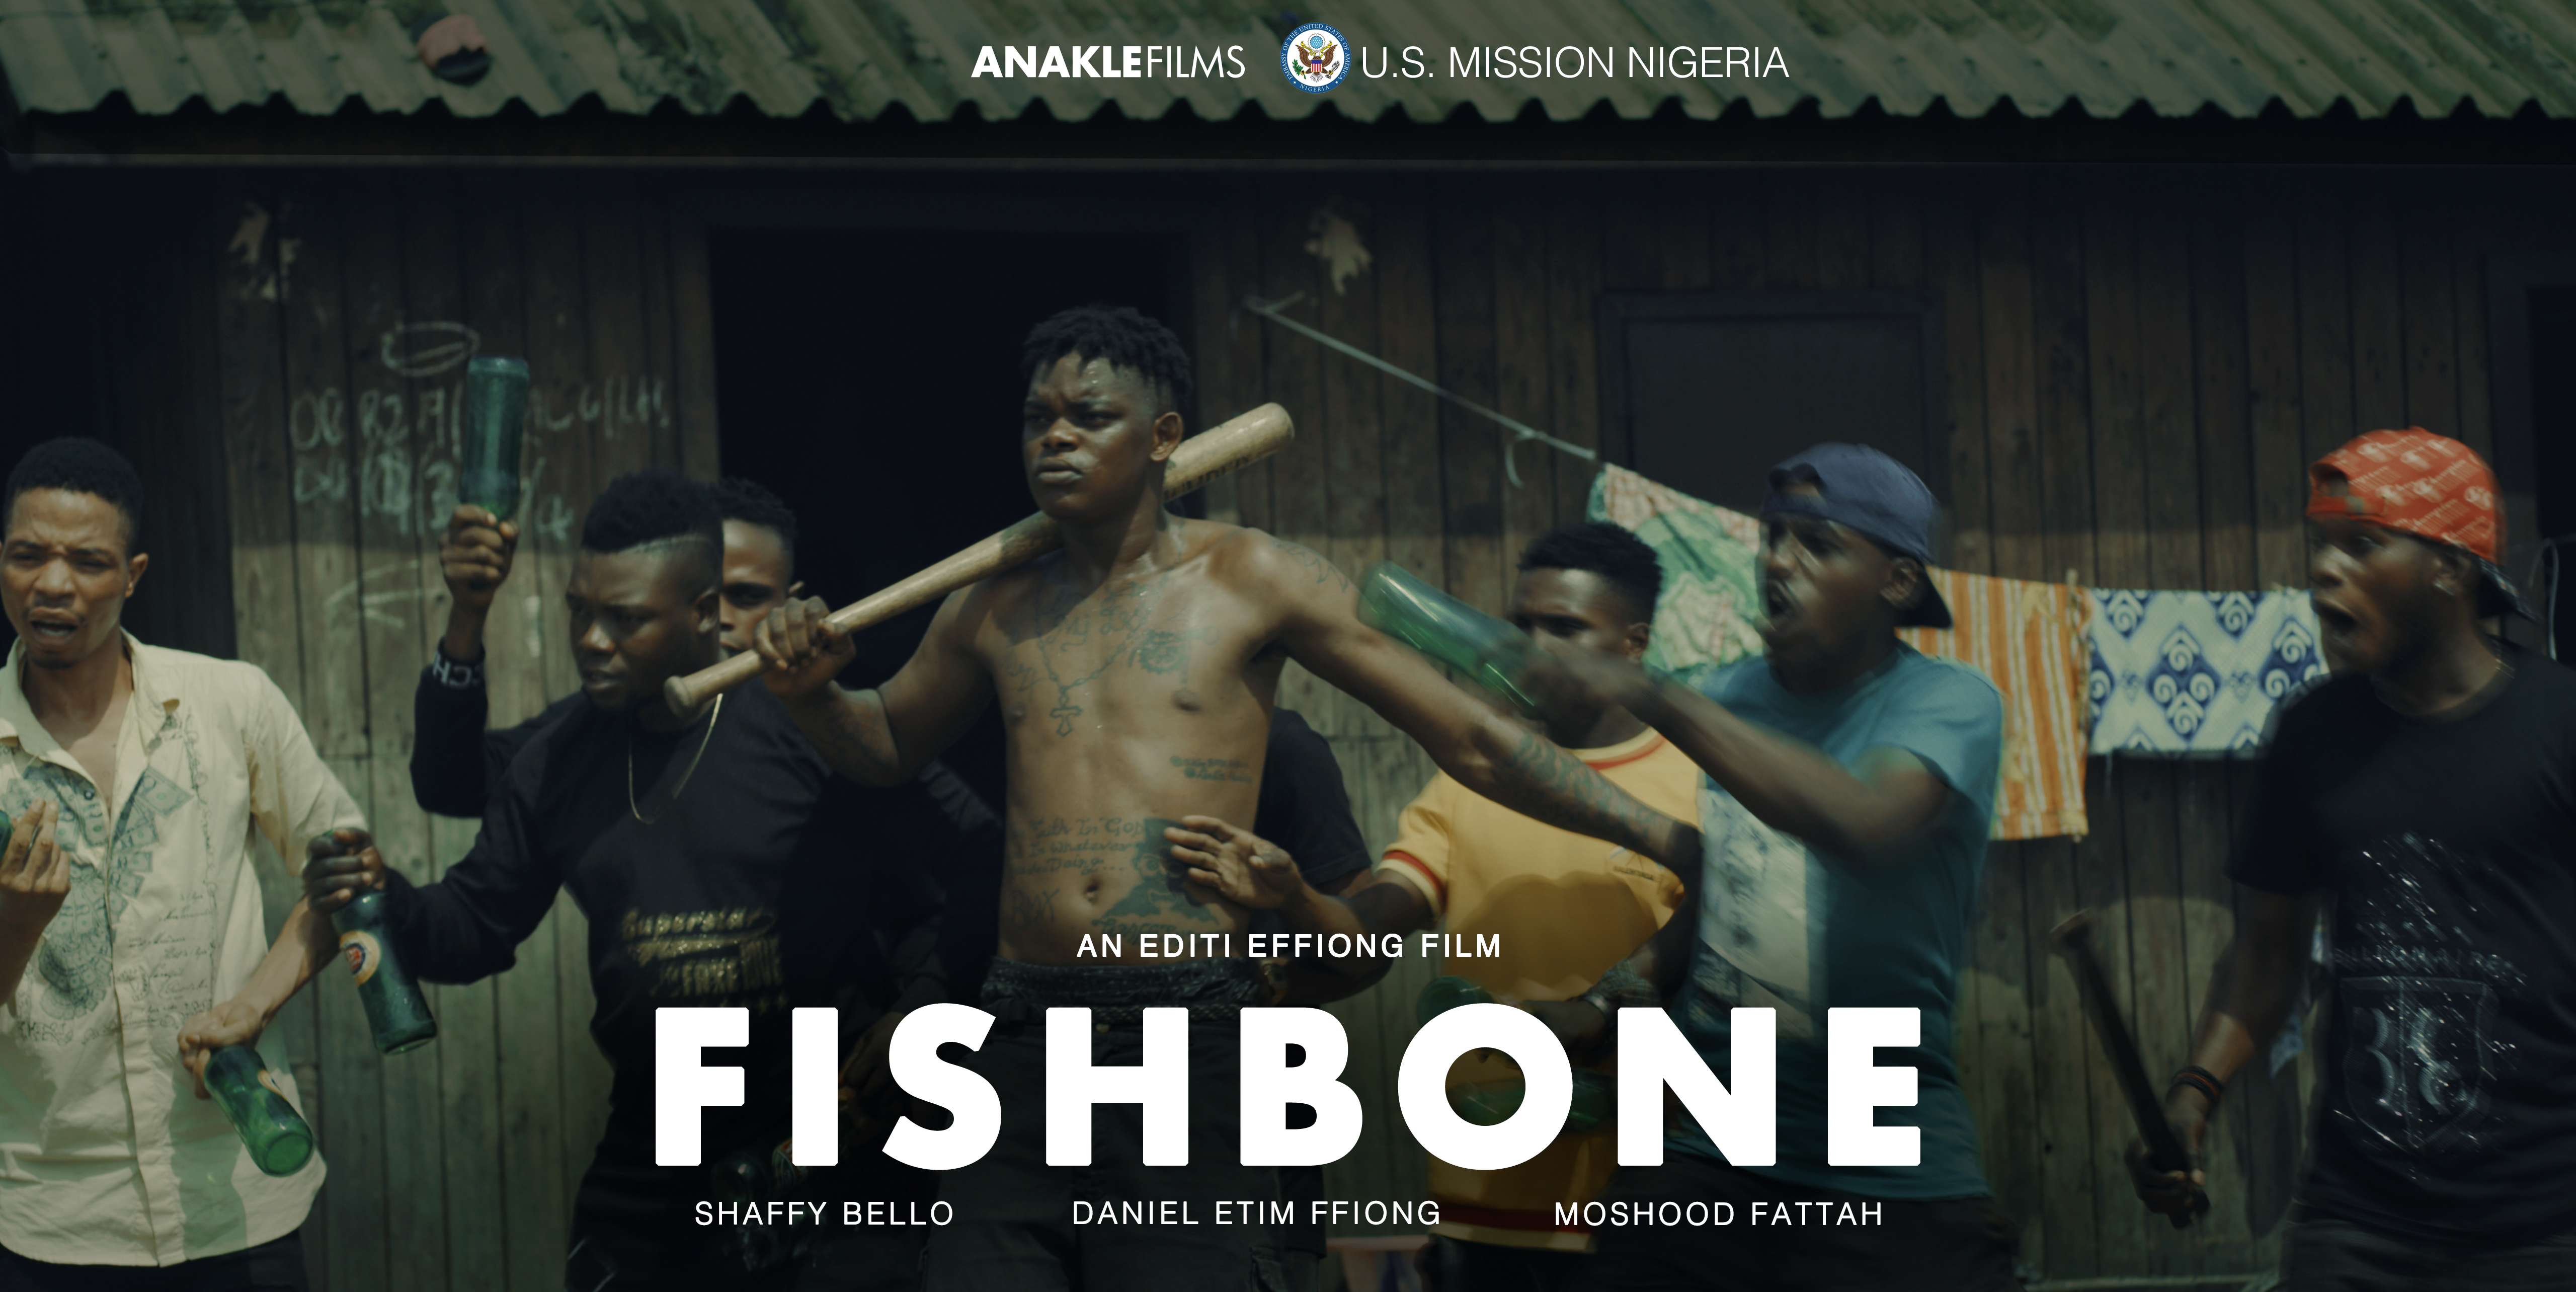 Anakle Films Releases Official Fishbone Trailer